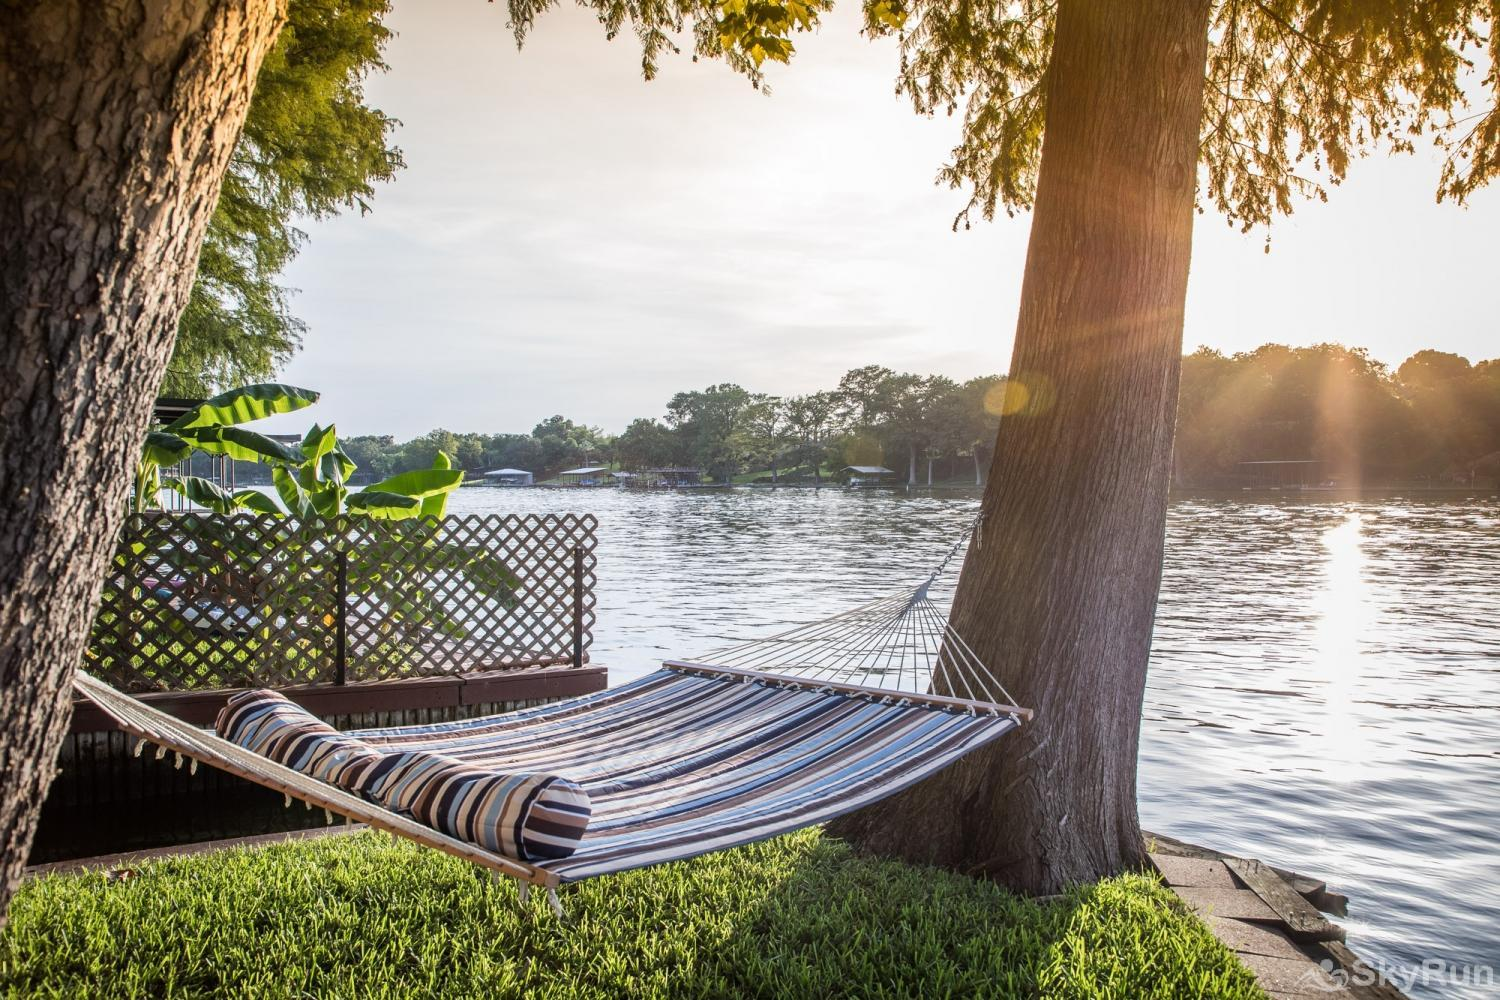 SERENITY SHORES Lakeside Hammock